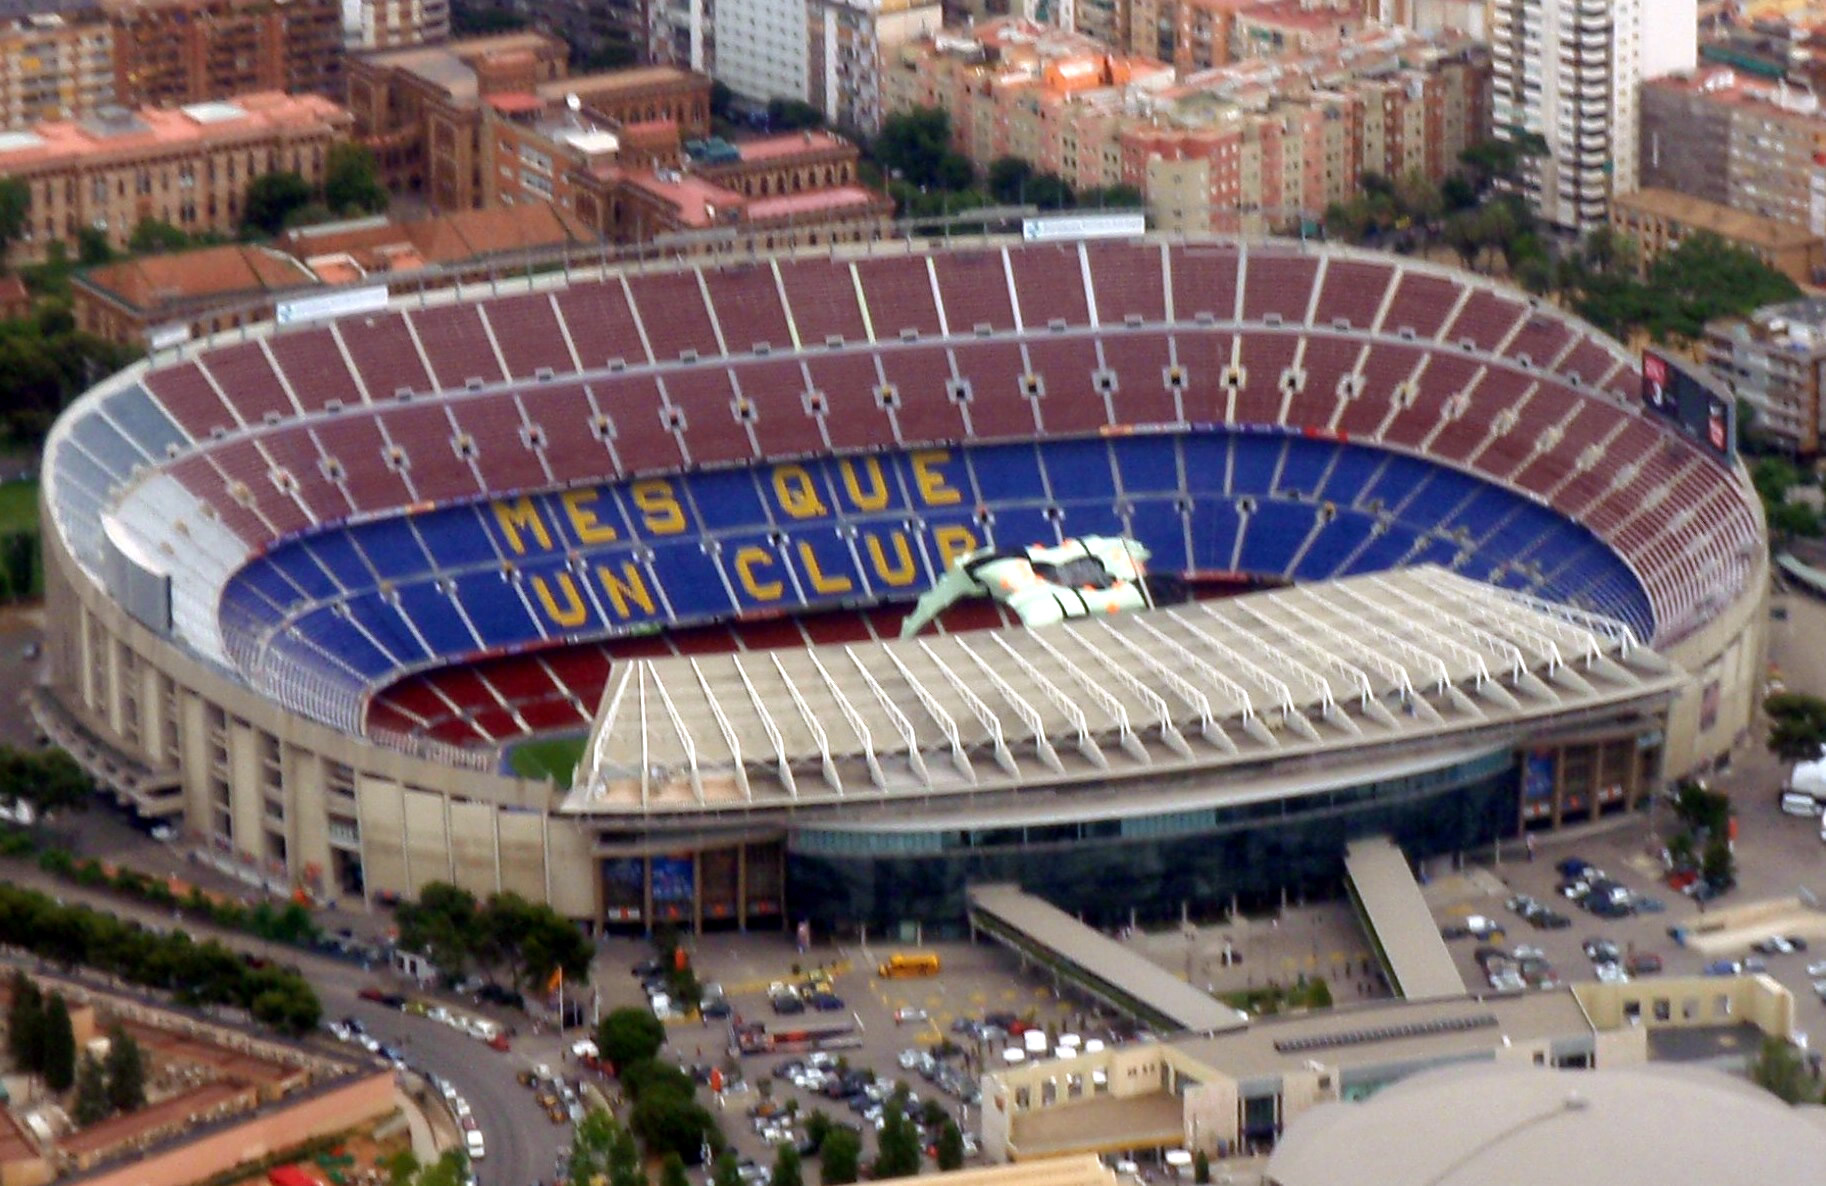 Camp nou wikipedia for Terrace pronunciation